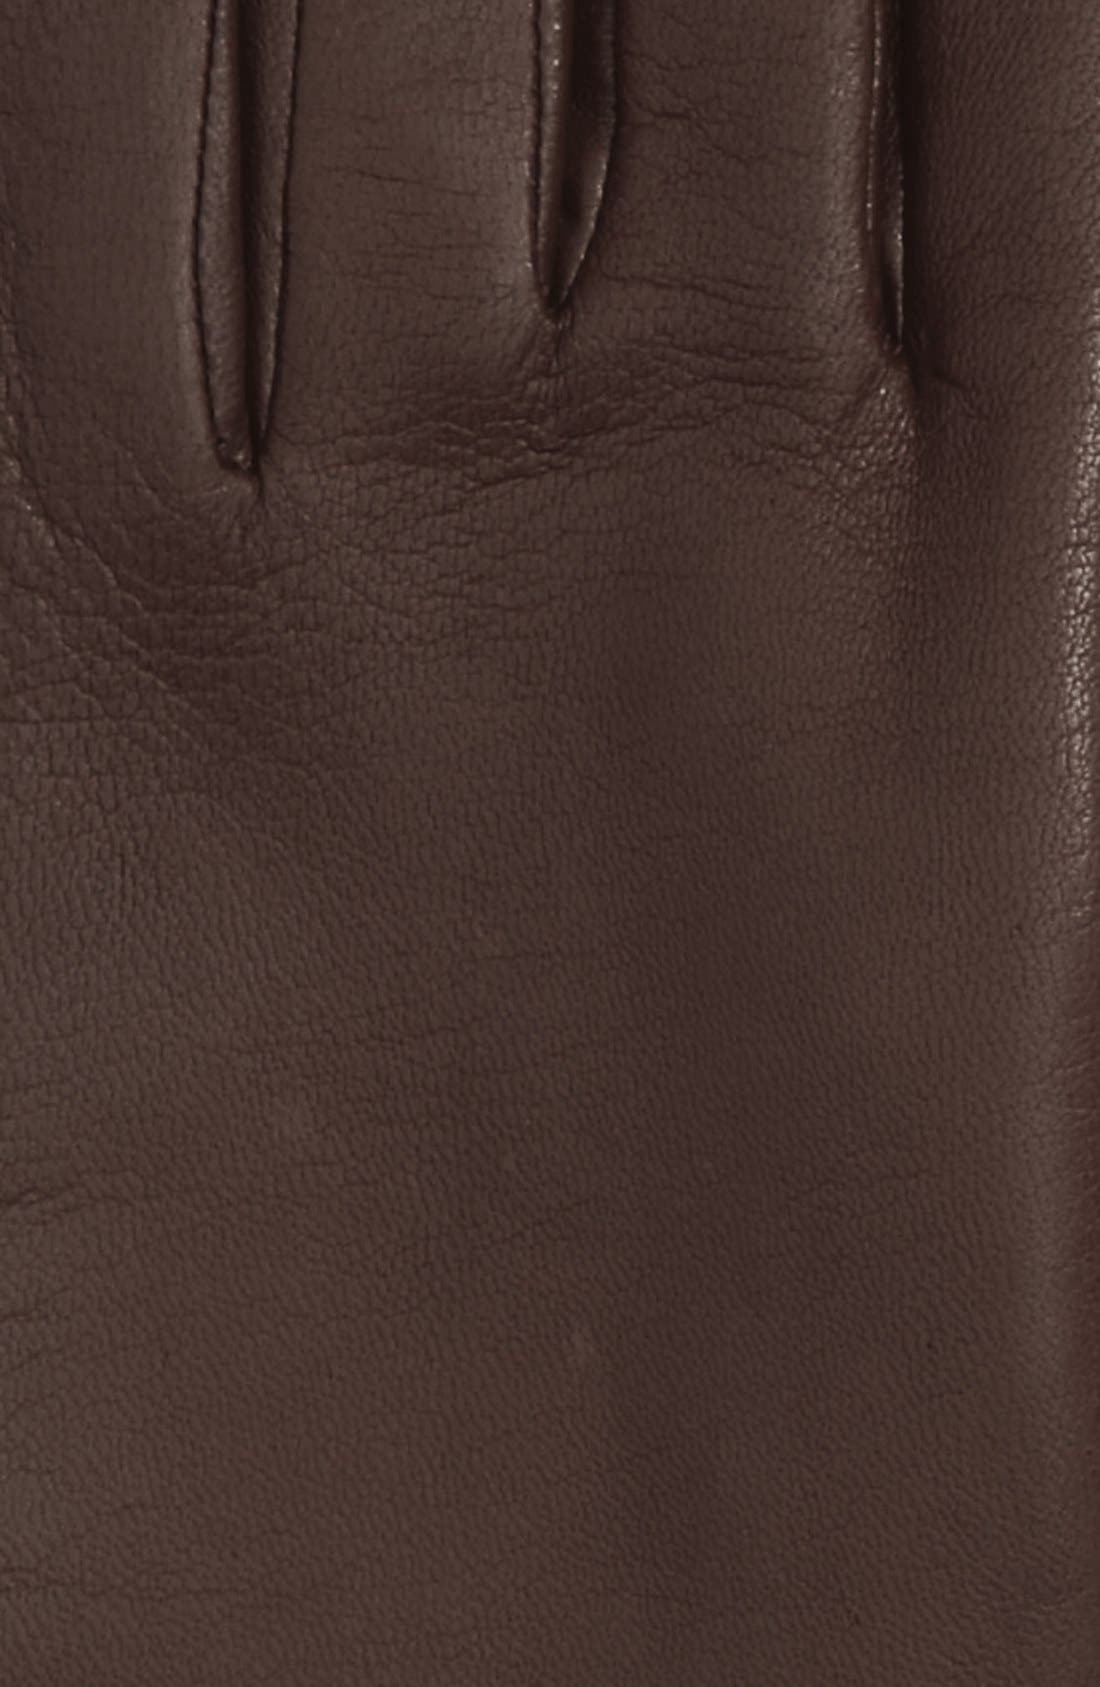 'Basic Tech' Cashmere Lined Leather Gloves,                             Alternate thumbnail 16, color,